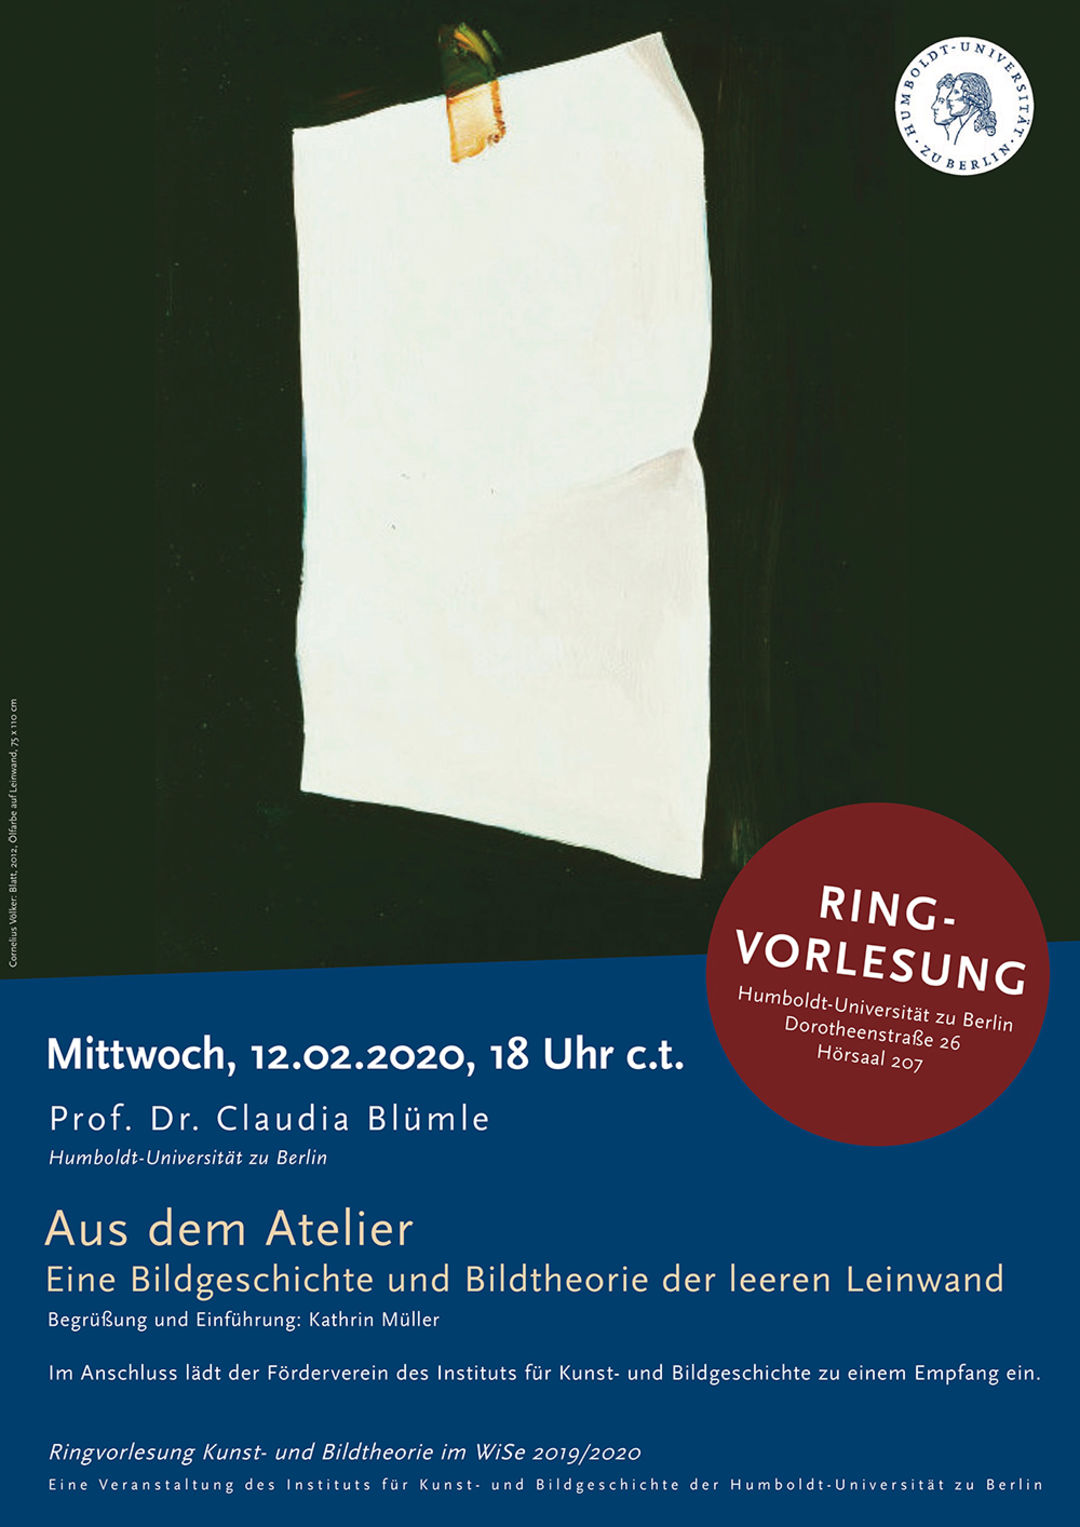 Copyright: Institute for Art and Visual History Humboldt-Universität zu Berlin